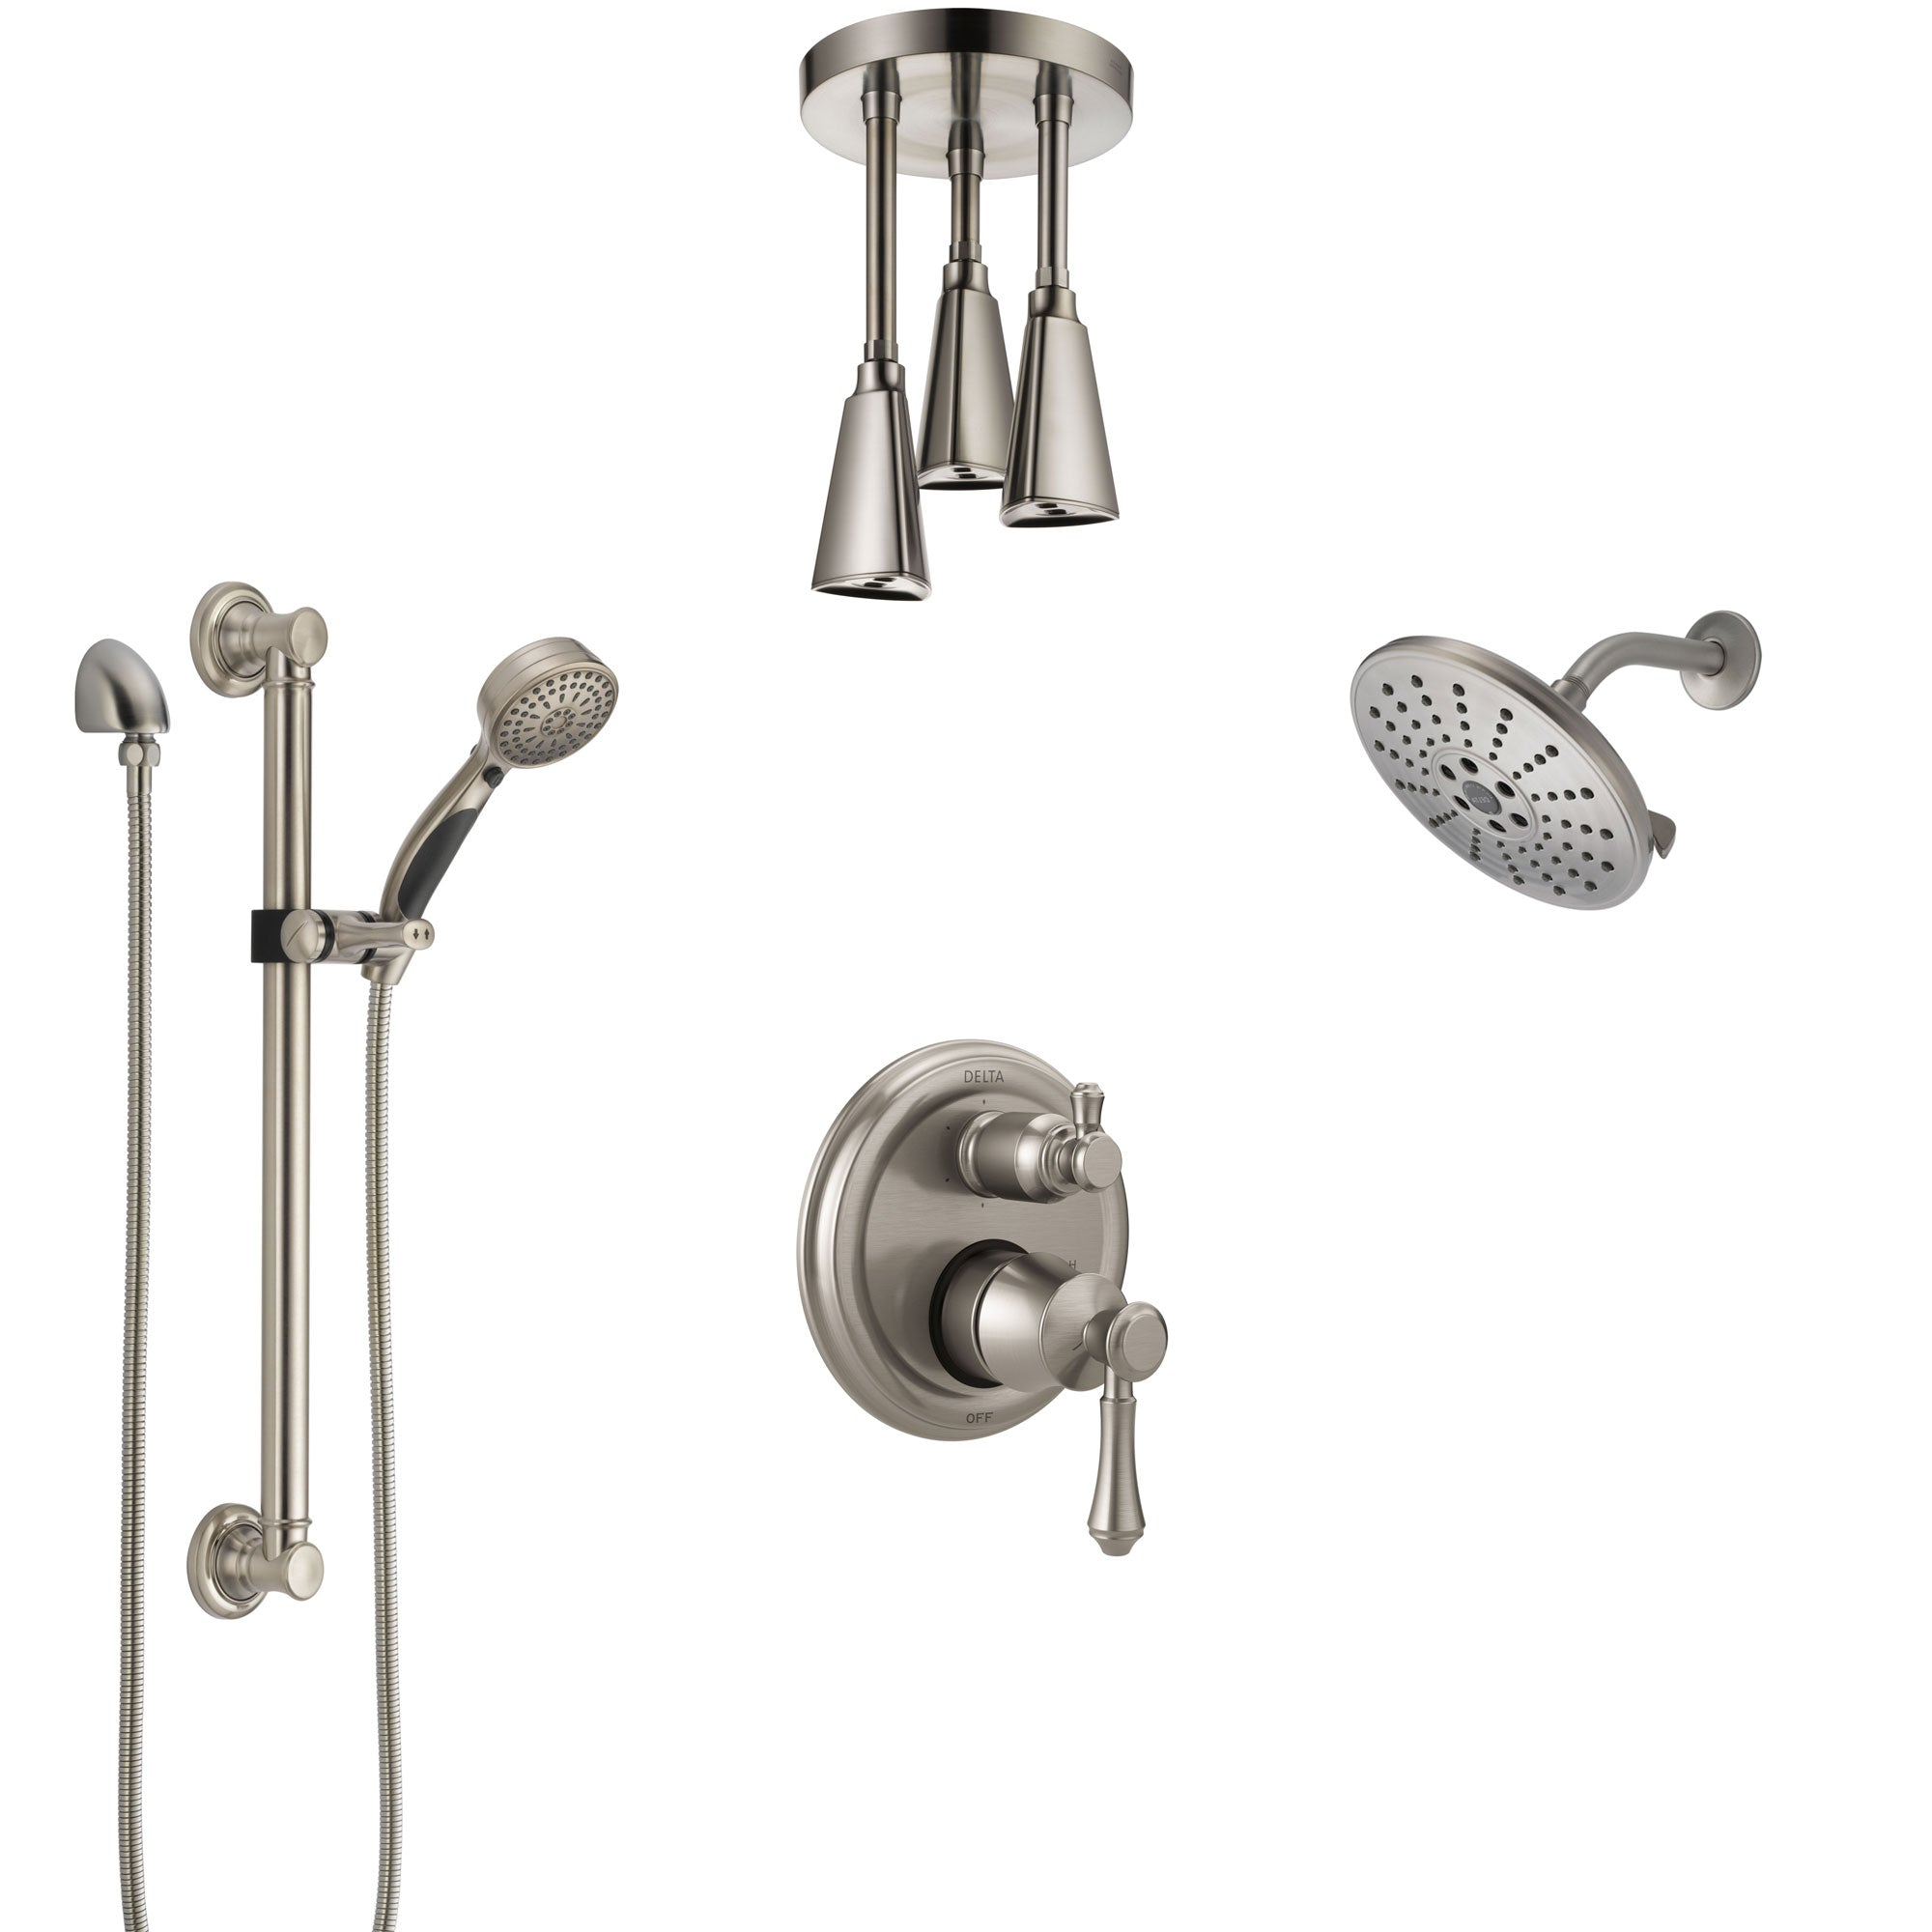 Delta Cassidy Stainless Steel Finish Integrated Diverter Shower System Control Handle, Showerhead, Ceiling Showerhead, Grab Bar Hand Spray SS24997SS7